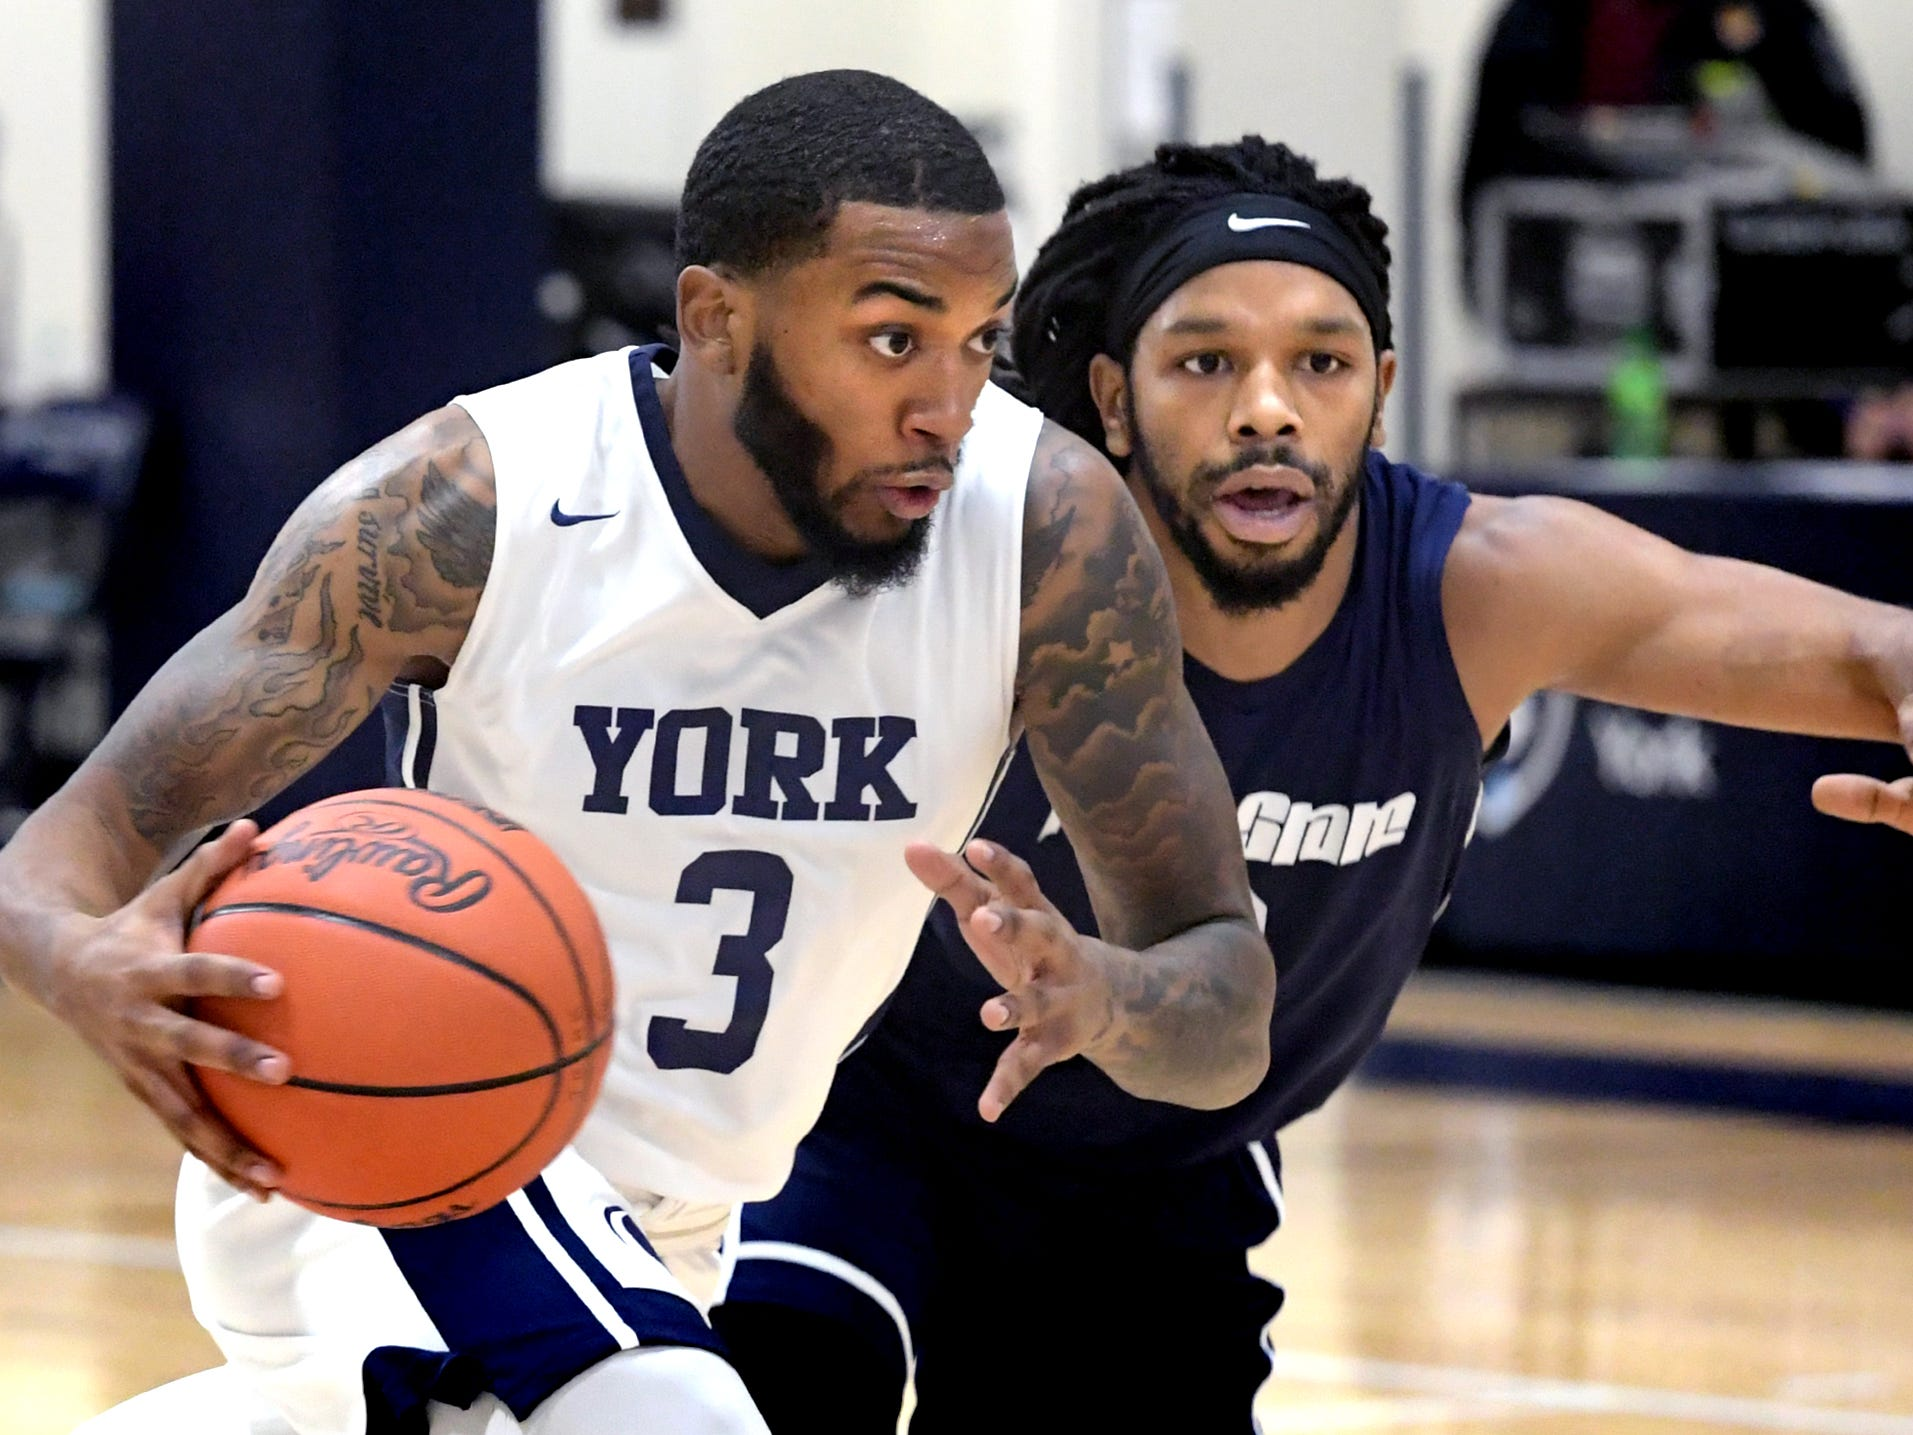 Penn State York's Anthony Bennett, Jr. drives with Penn State Wilkes-Barre's Ameer Biddle defending during action in York Tuesday, Nov. 27, 2018. Bill Kalina photo